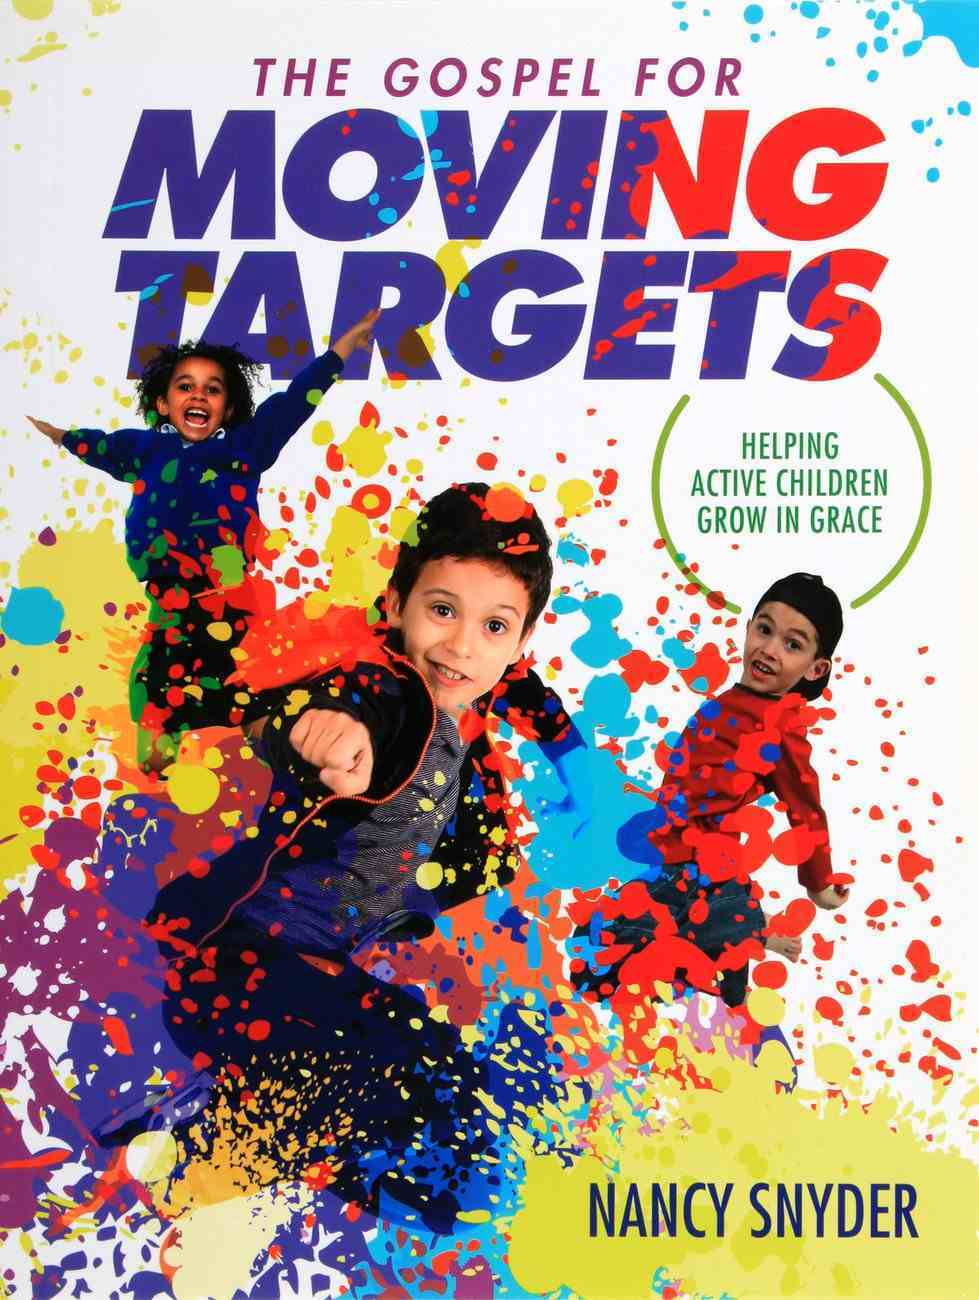 The Gospel For Moving Targets: Helping Active Children Grow in Grace PB Large Format